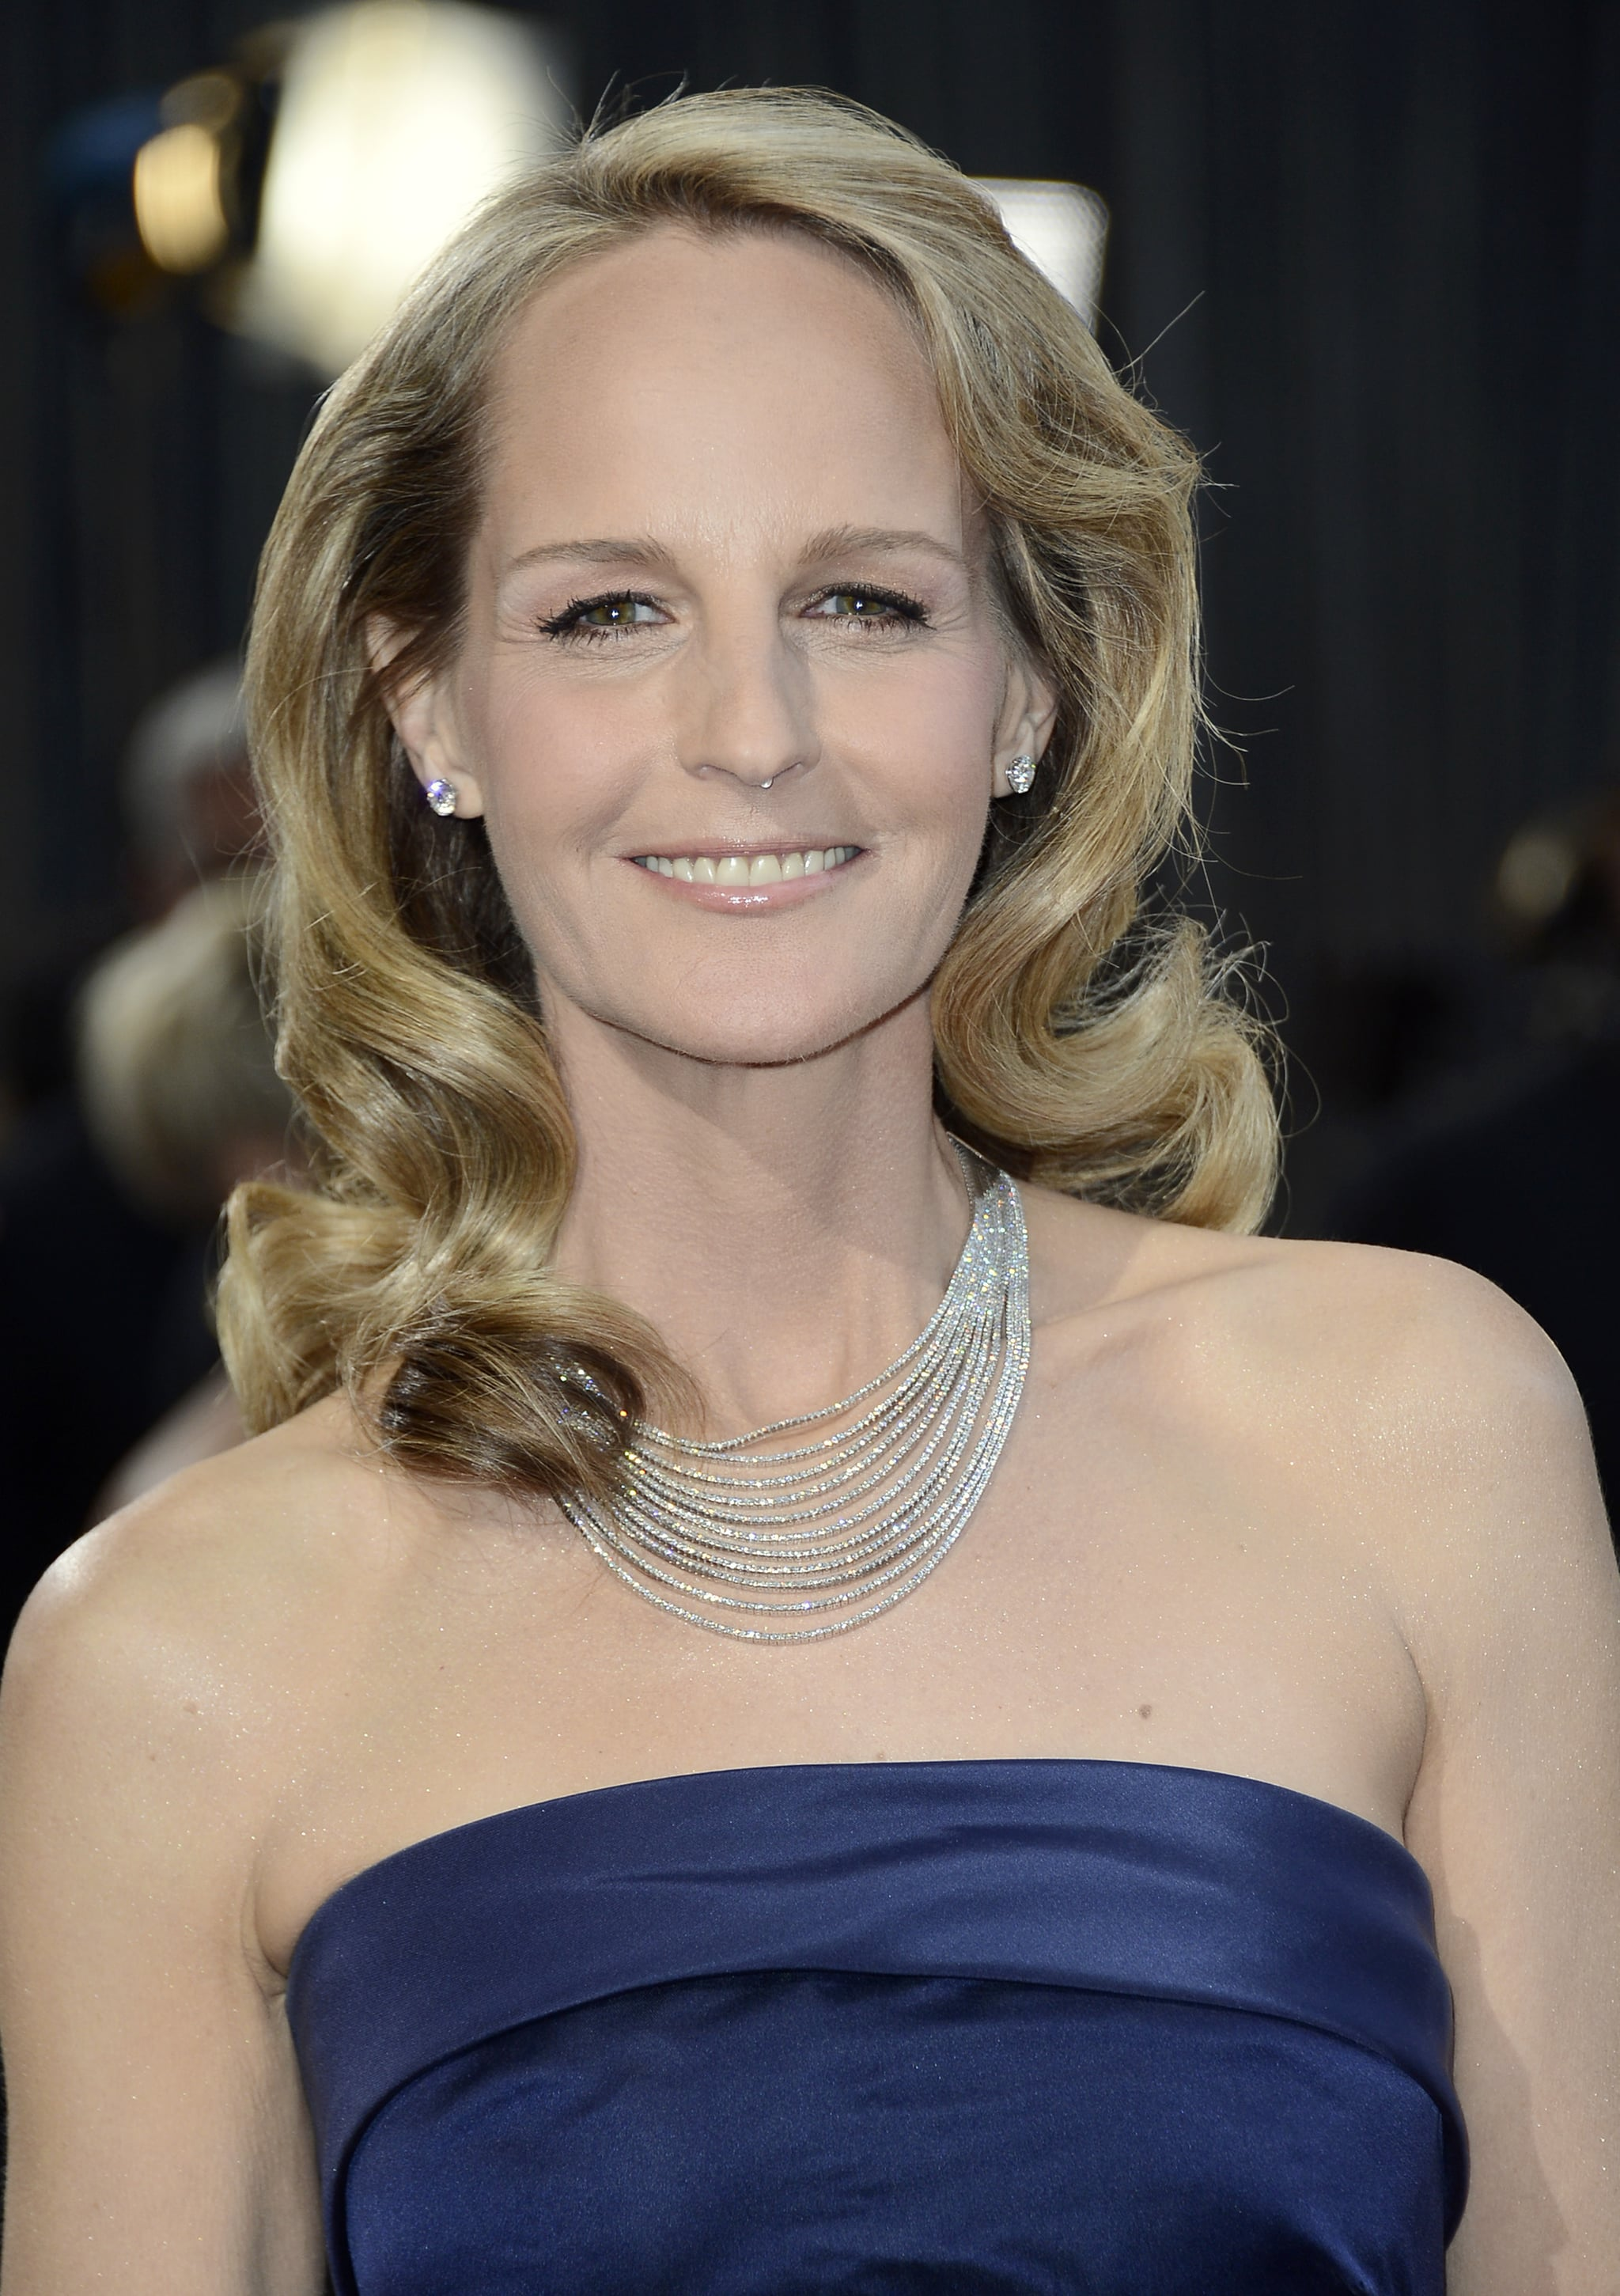 Helen Hunt on the red carpet at the Oscars 2013.